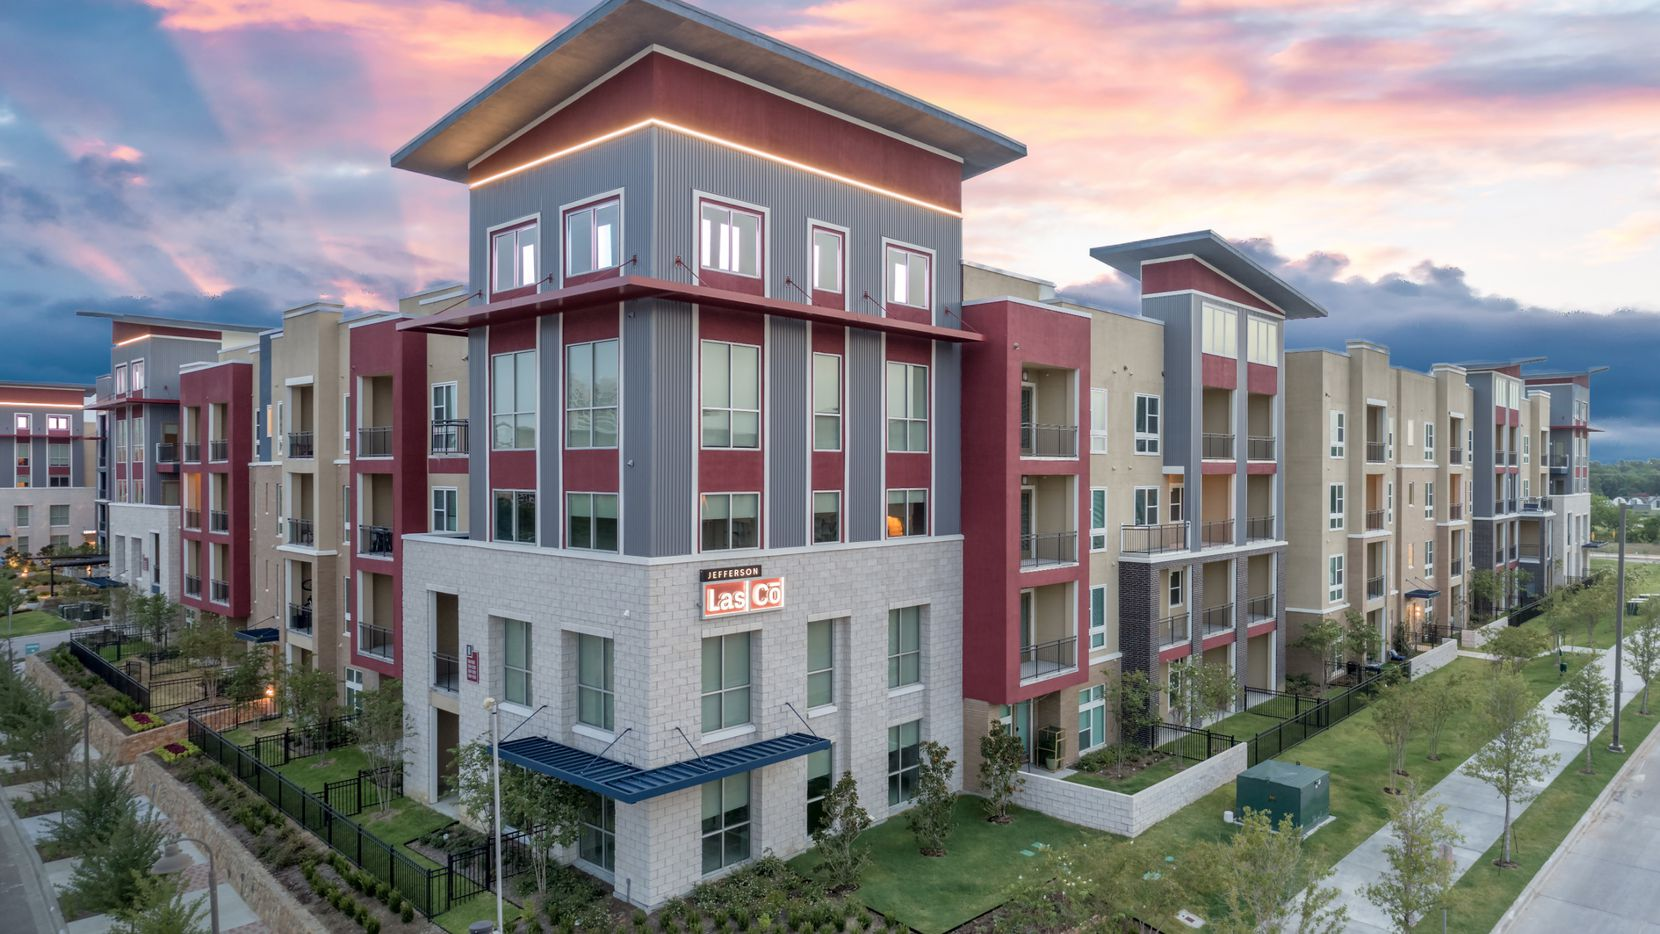 The 422-unit Jefferson Las Co apartments were purchased by Pacific Life.